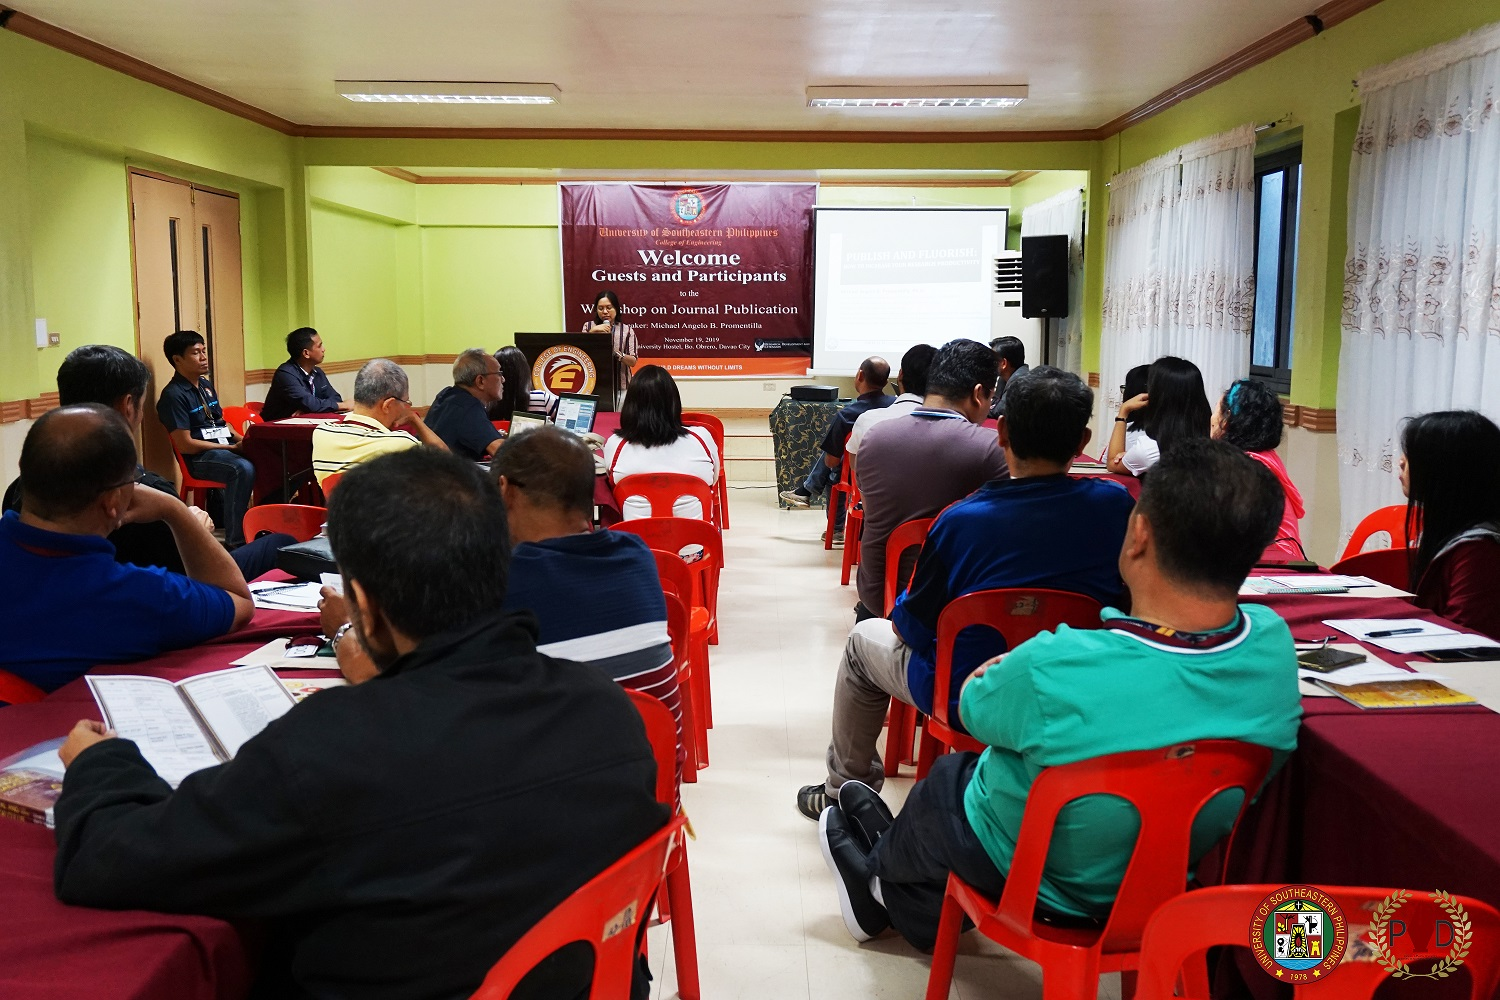 USeP conducts Writeshop on Journal Publication in COE